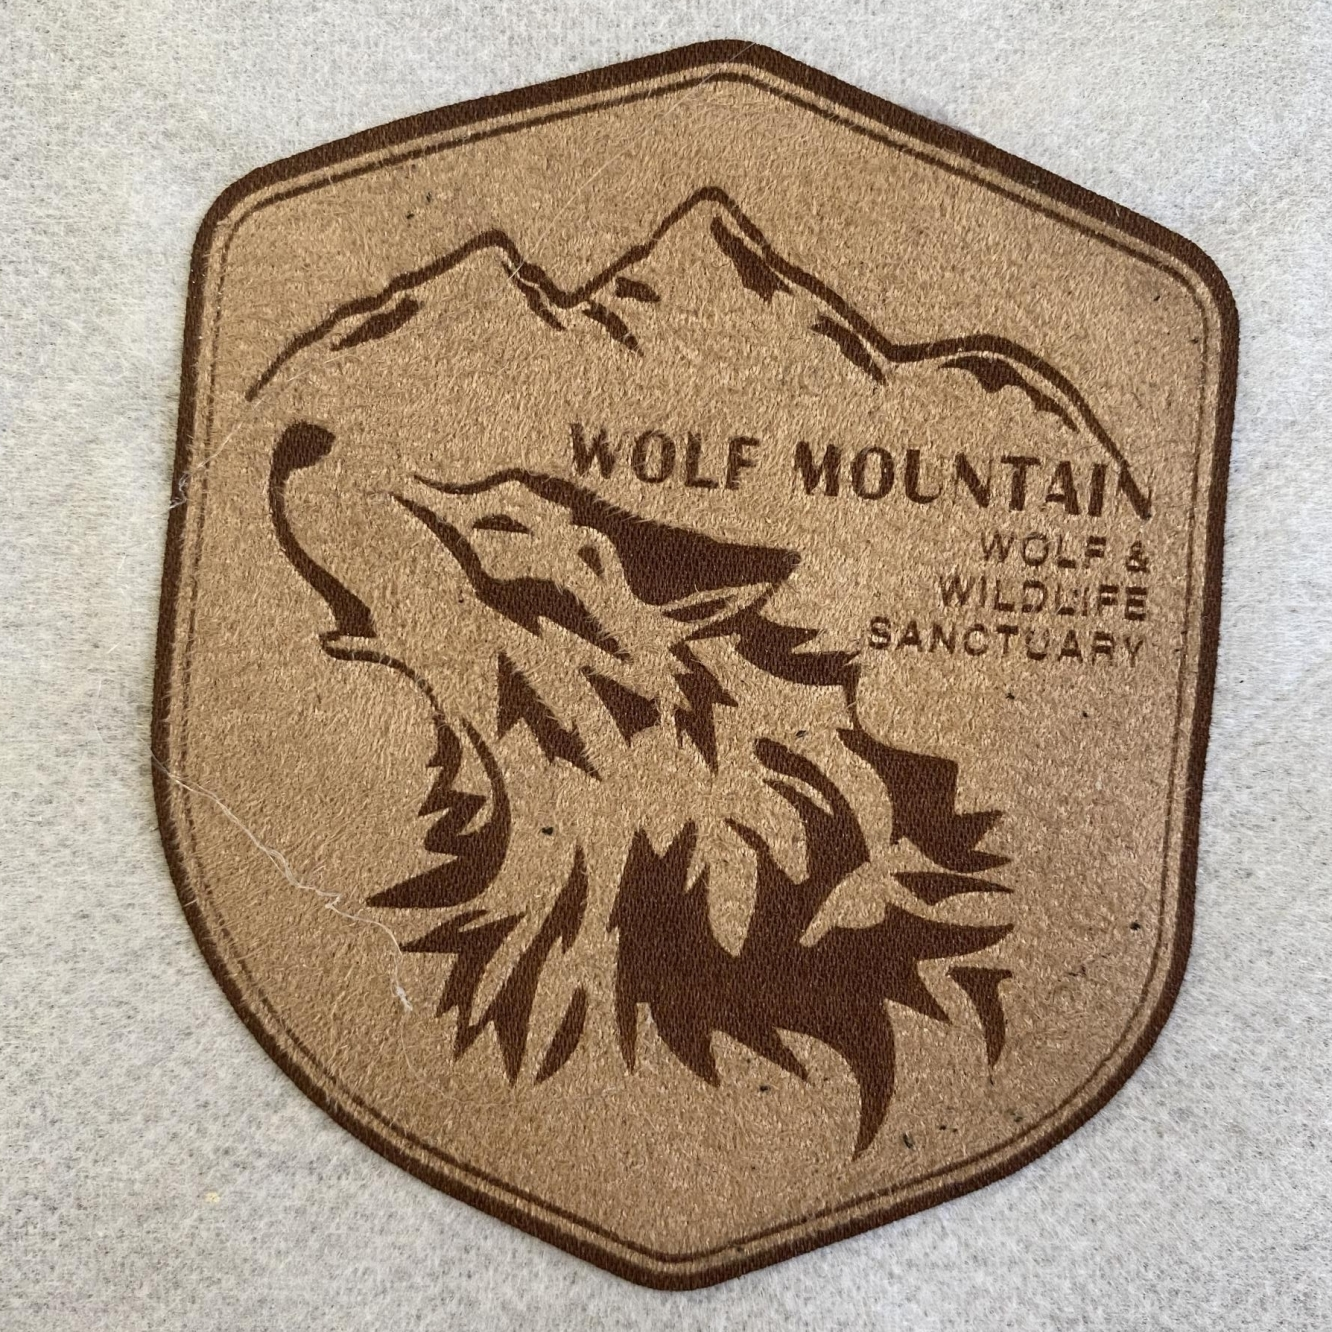 Wolf Mountain Patch Sign Studios